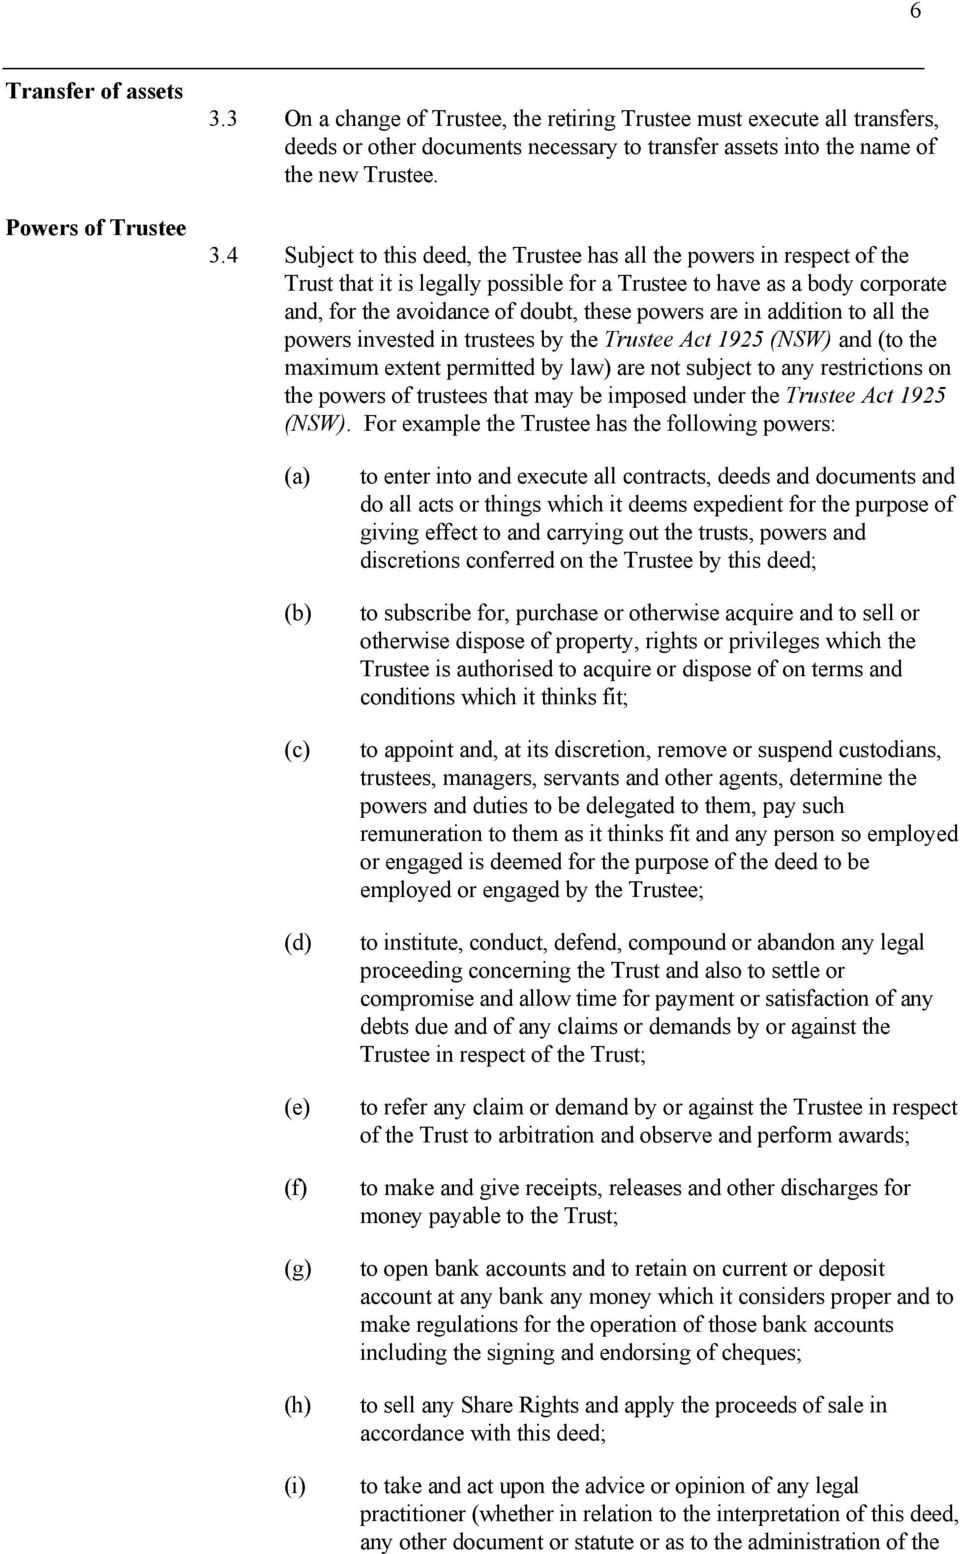 4 Subject to this deed, the Trustee has all the powers in respect of the Trust that it is legally possible for a Trustee to have as a body corporate and, for the avoidance of doubt, these powers are